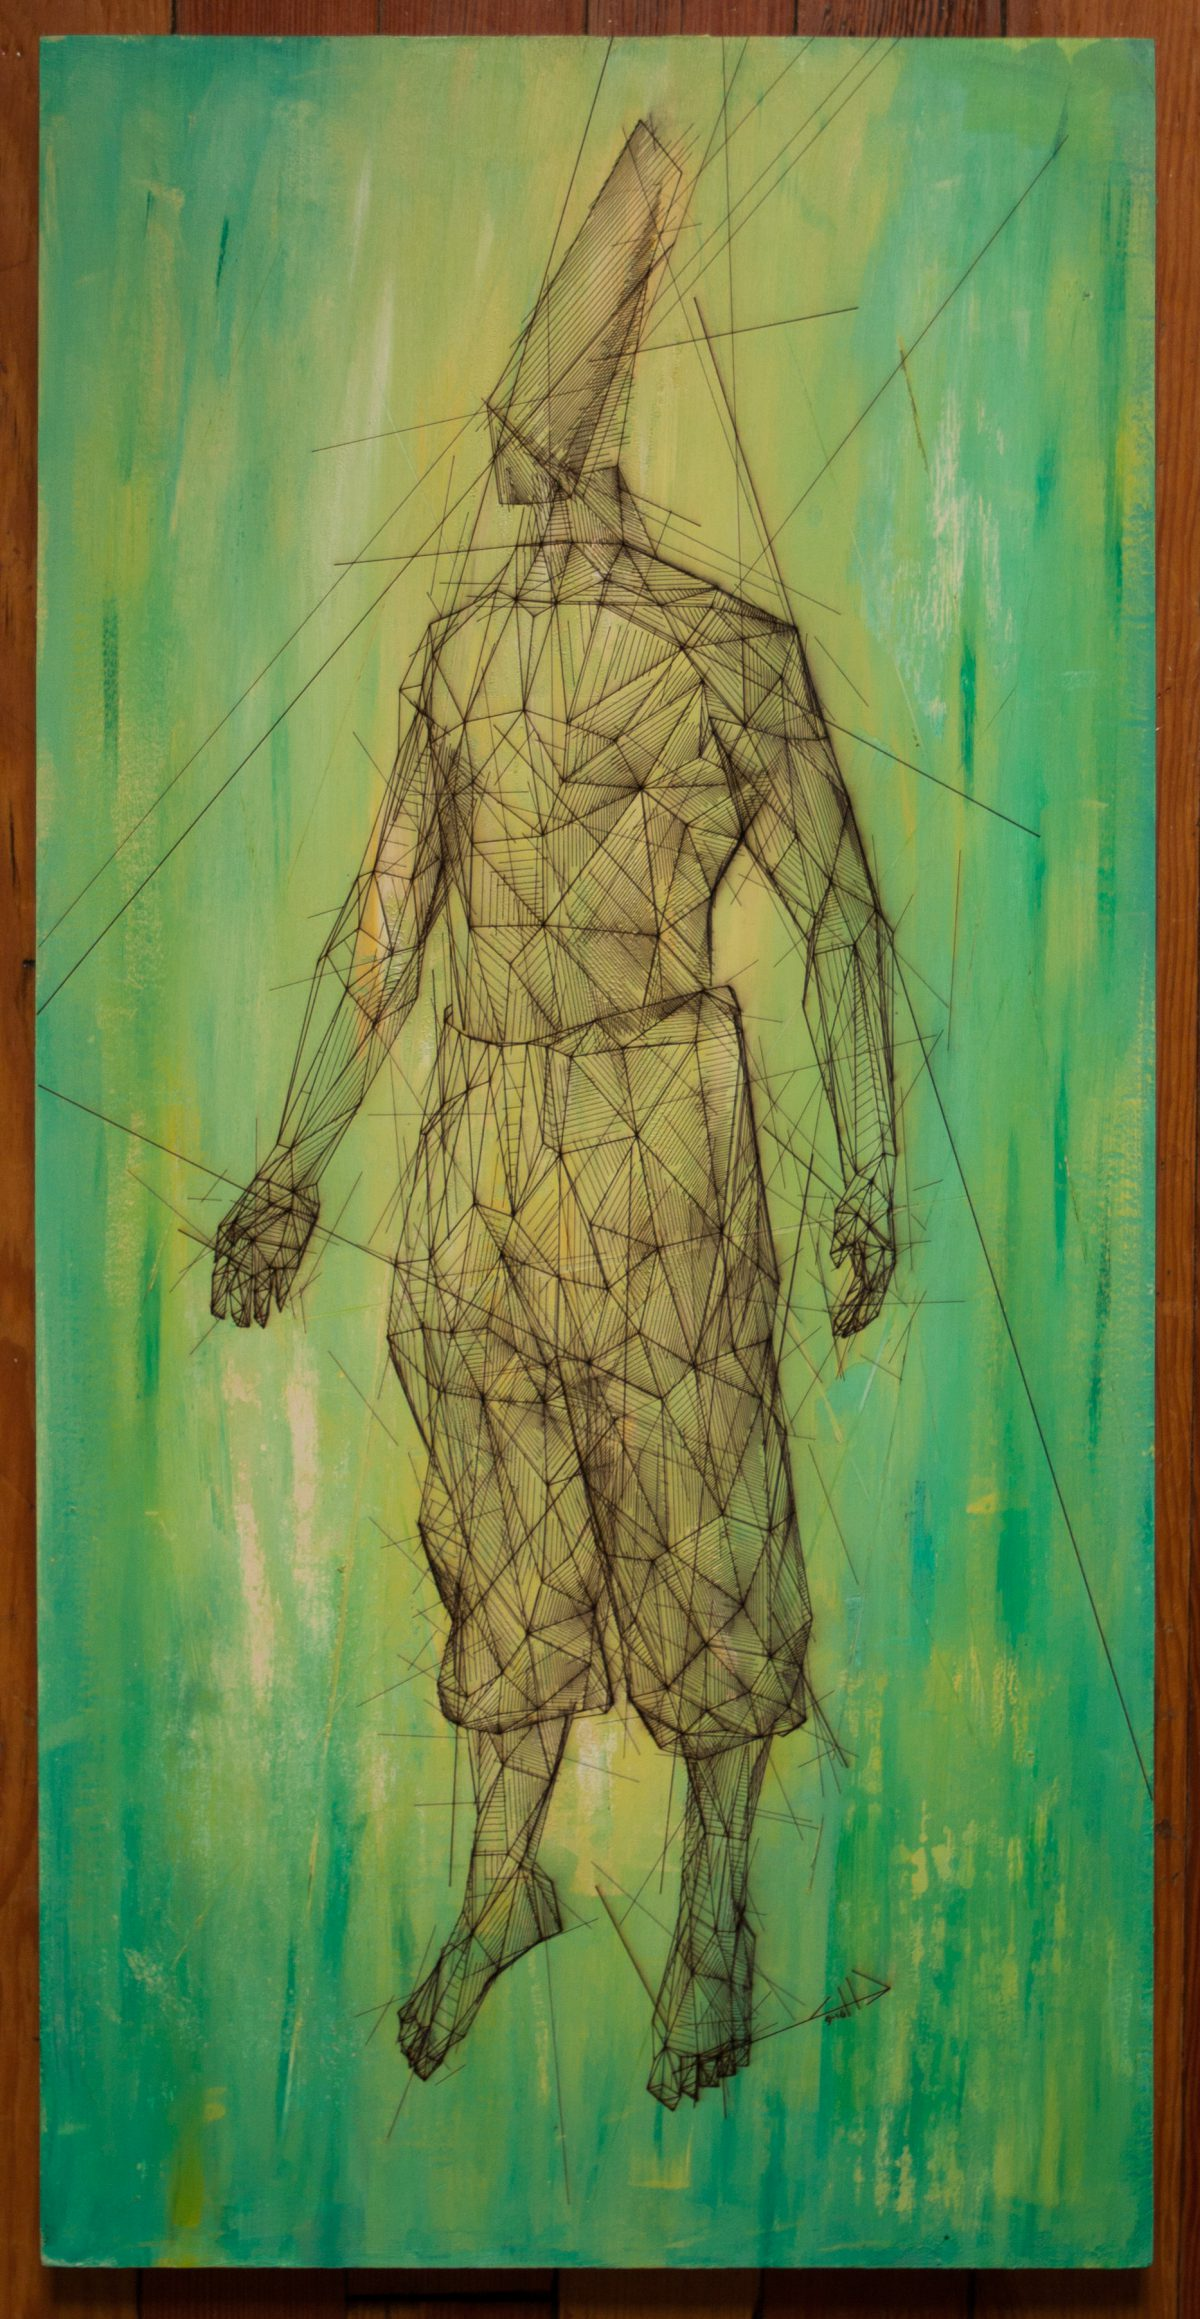 Warrior - 30x60cm laser cut, wooden panel, acrylics, laser, digital, acrylic, wood, ch3